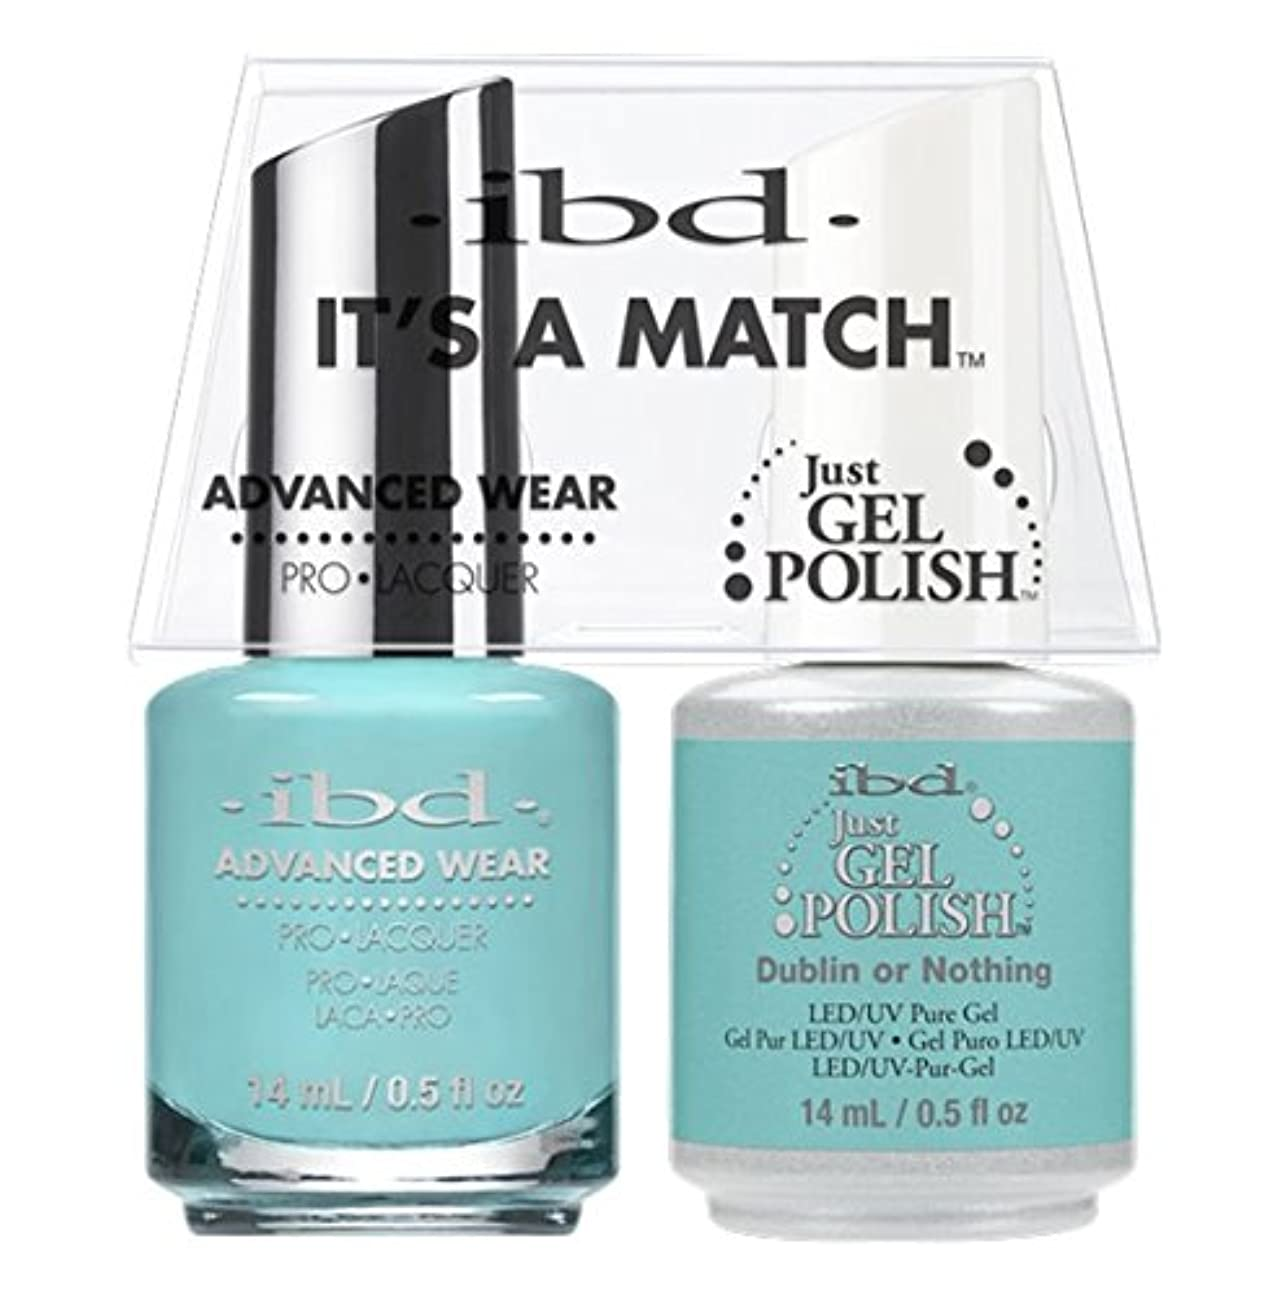 ibd - It's A Match -Duo Pack- Destination Collection - Dublin or Nothing - 14 mL / 0.5 oz Each